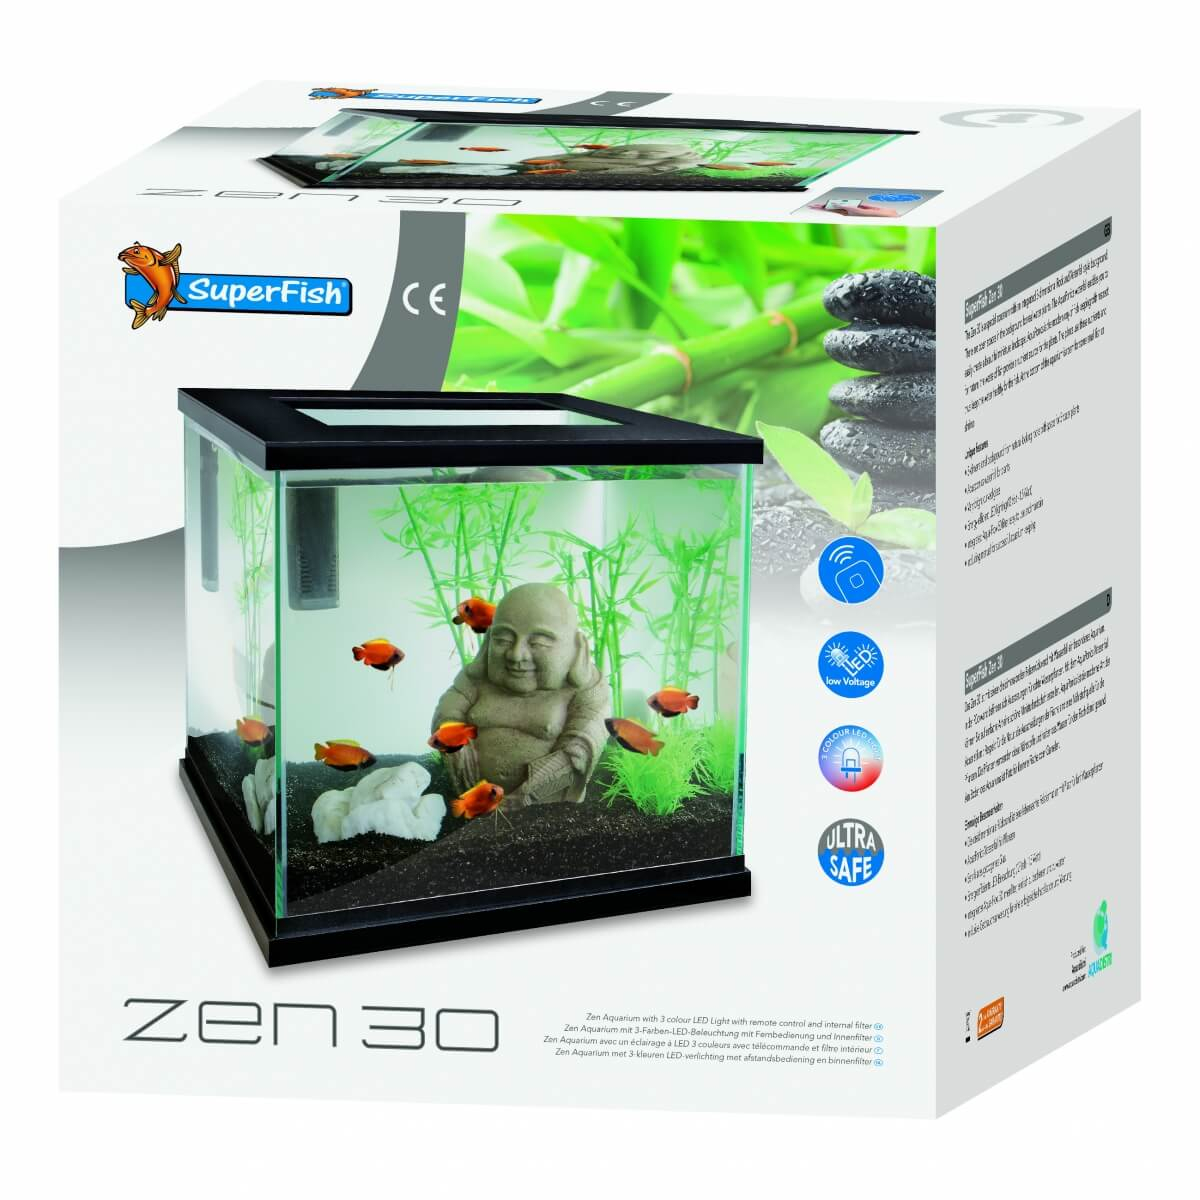 Aquarium zen 30 Superfish - blanc ou noir_2